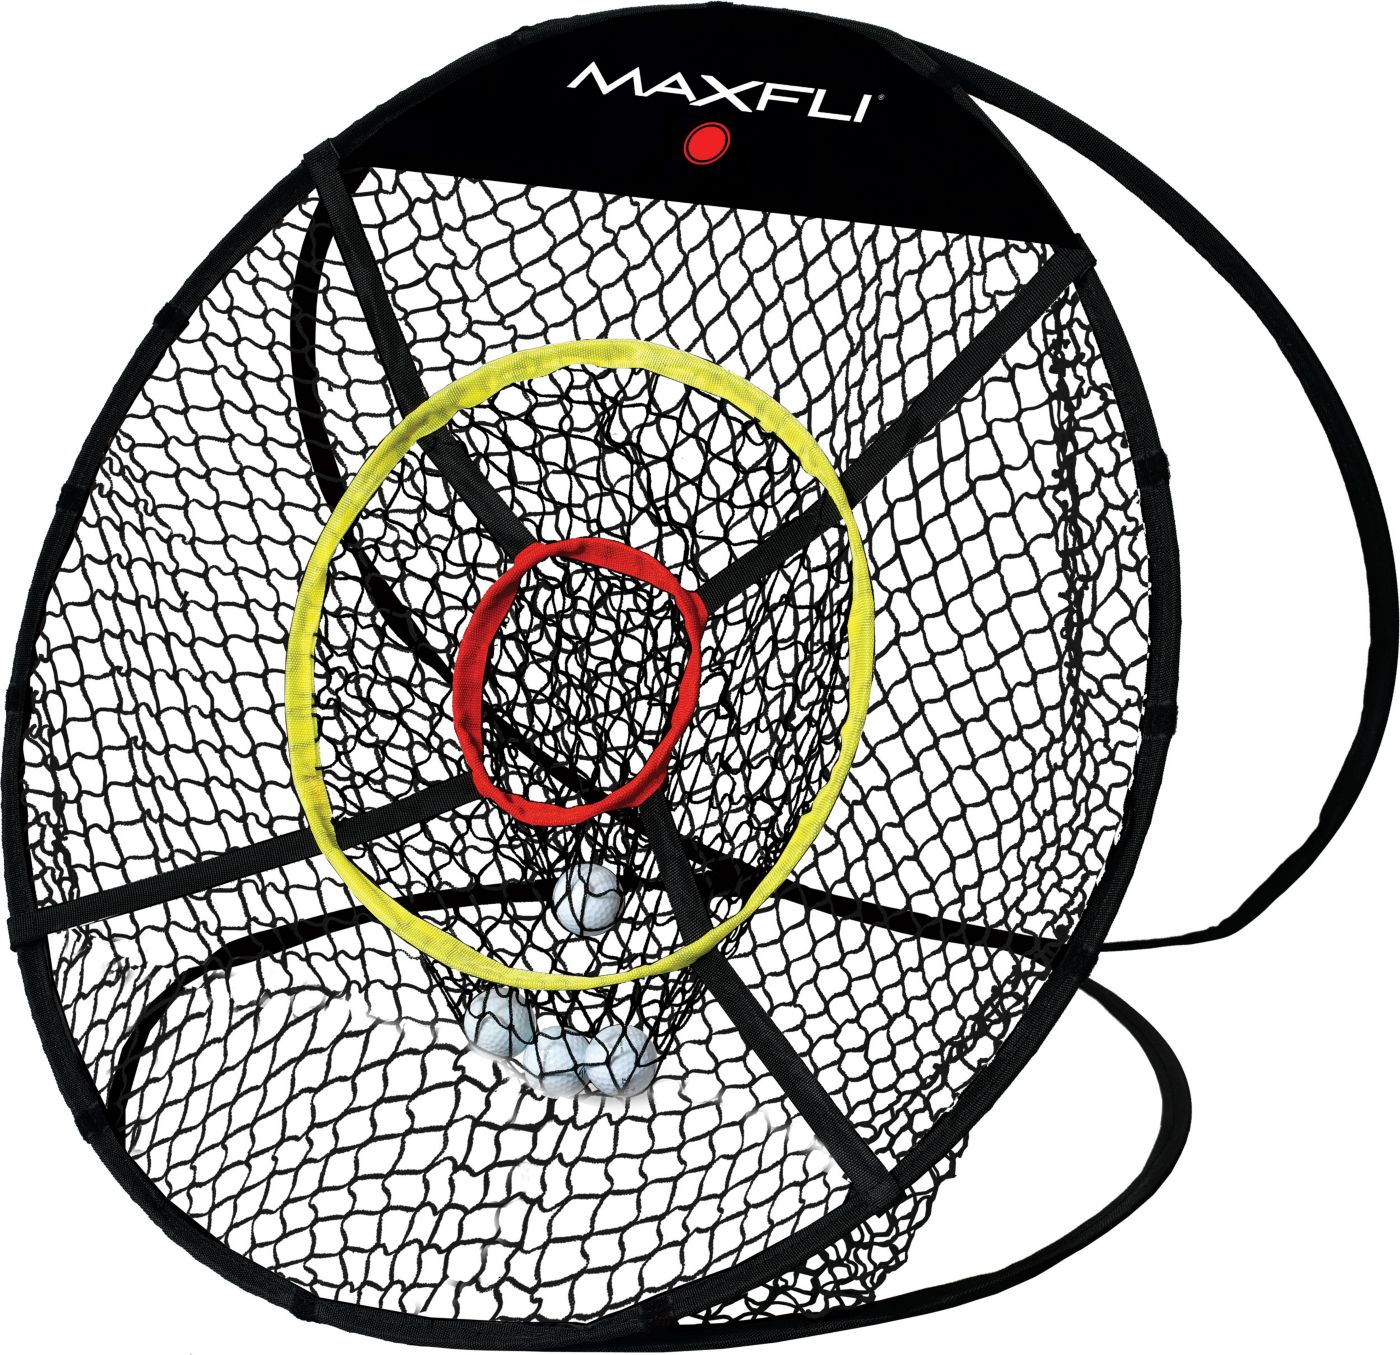 Maxfli 24'' Pop Up Chipping Net